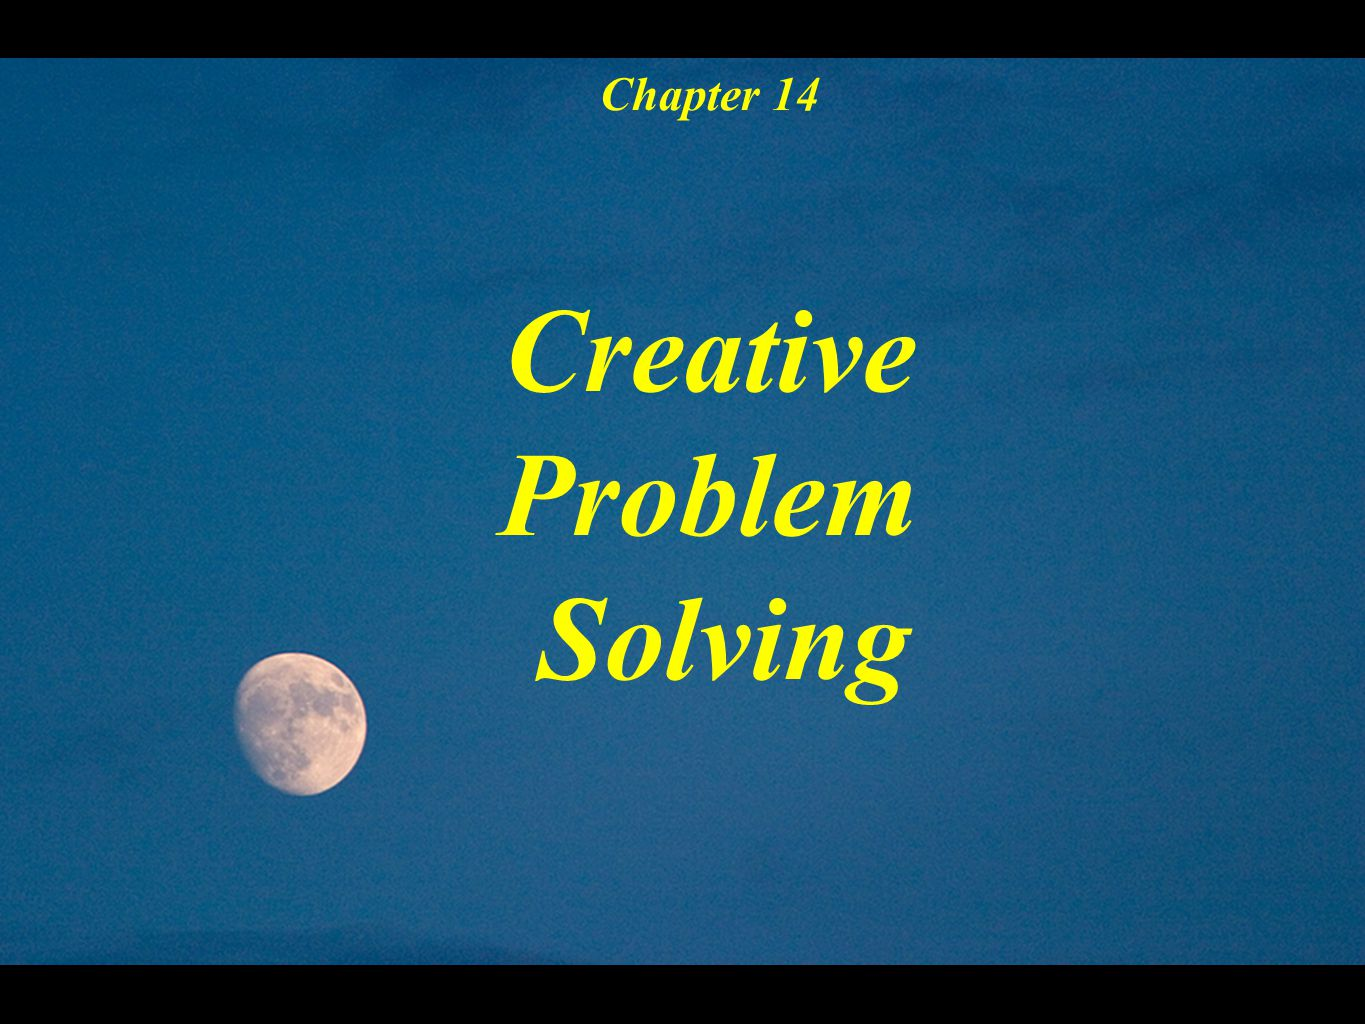 Chapter 14 Creative Problem Solving